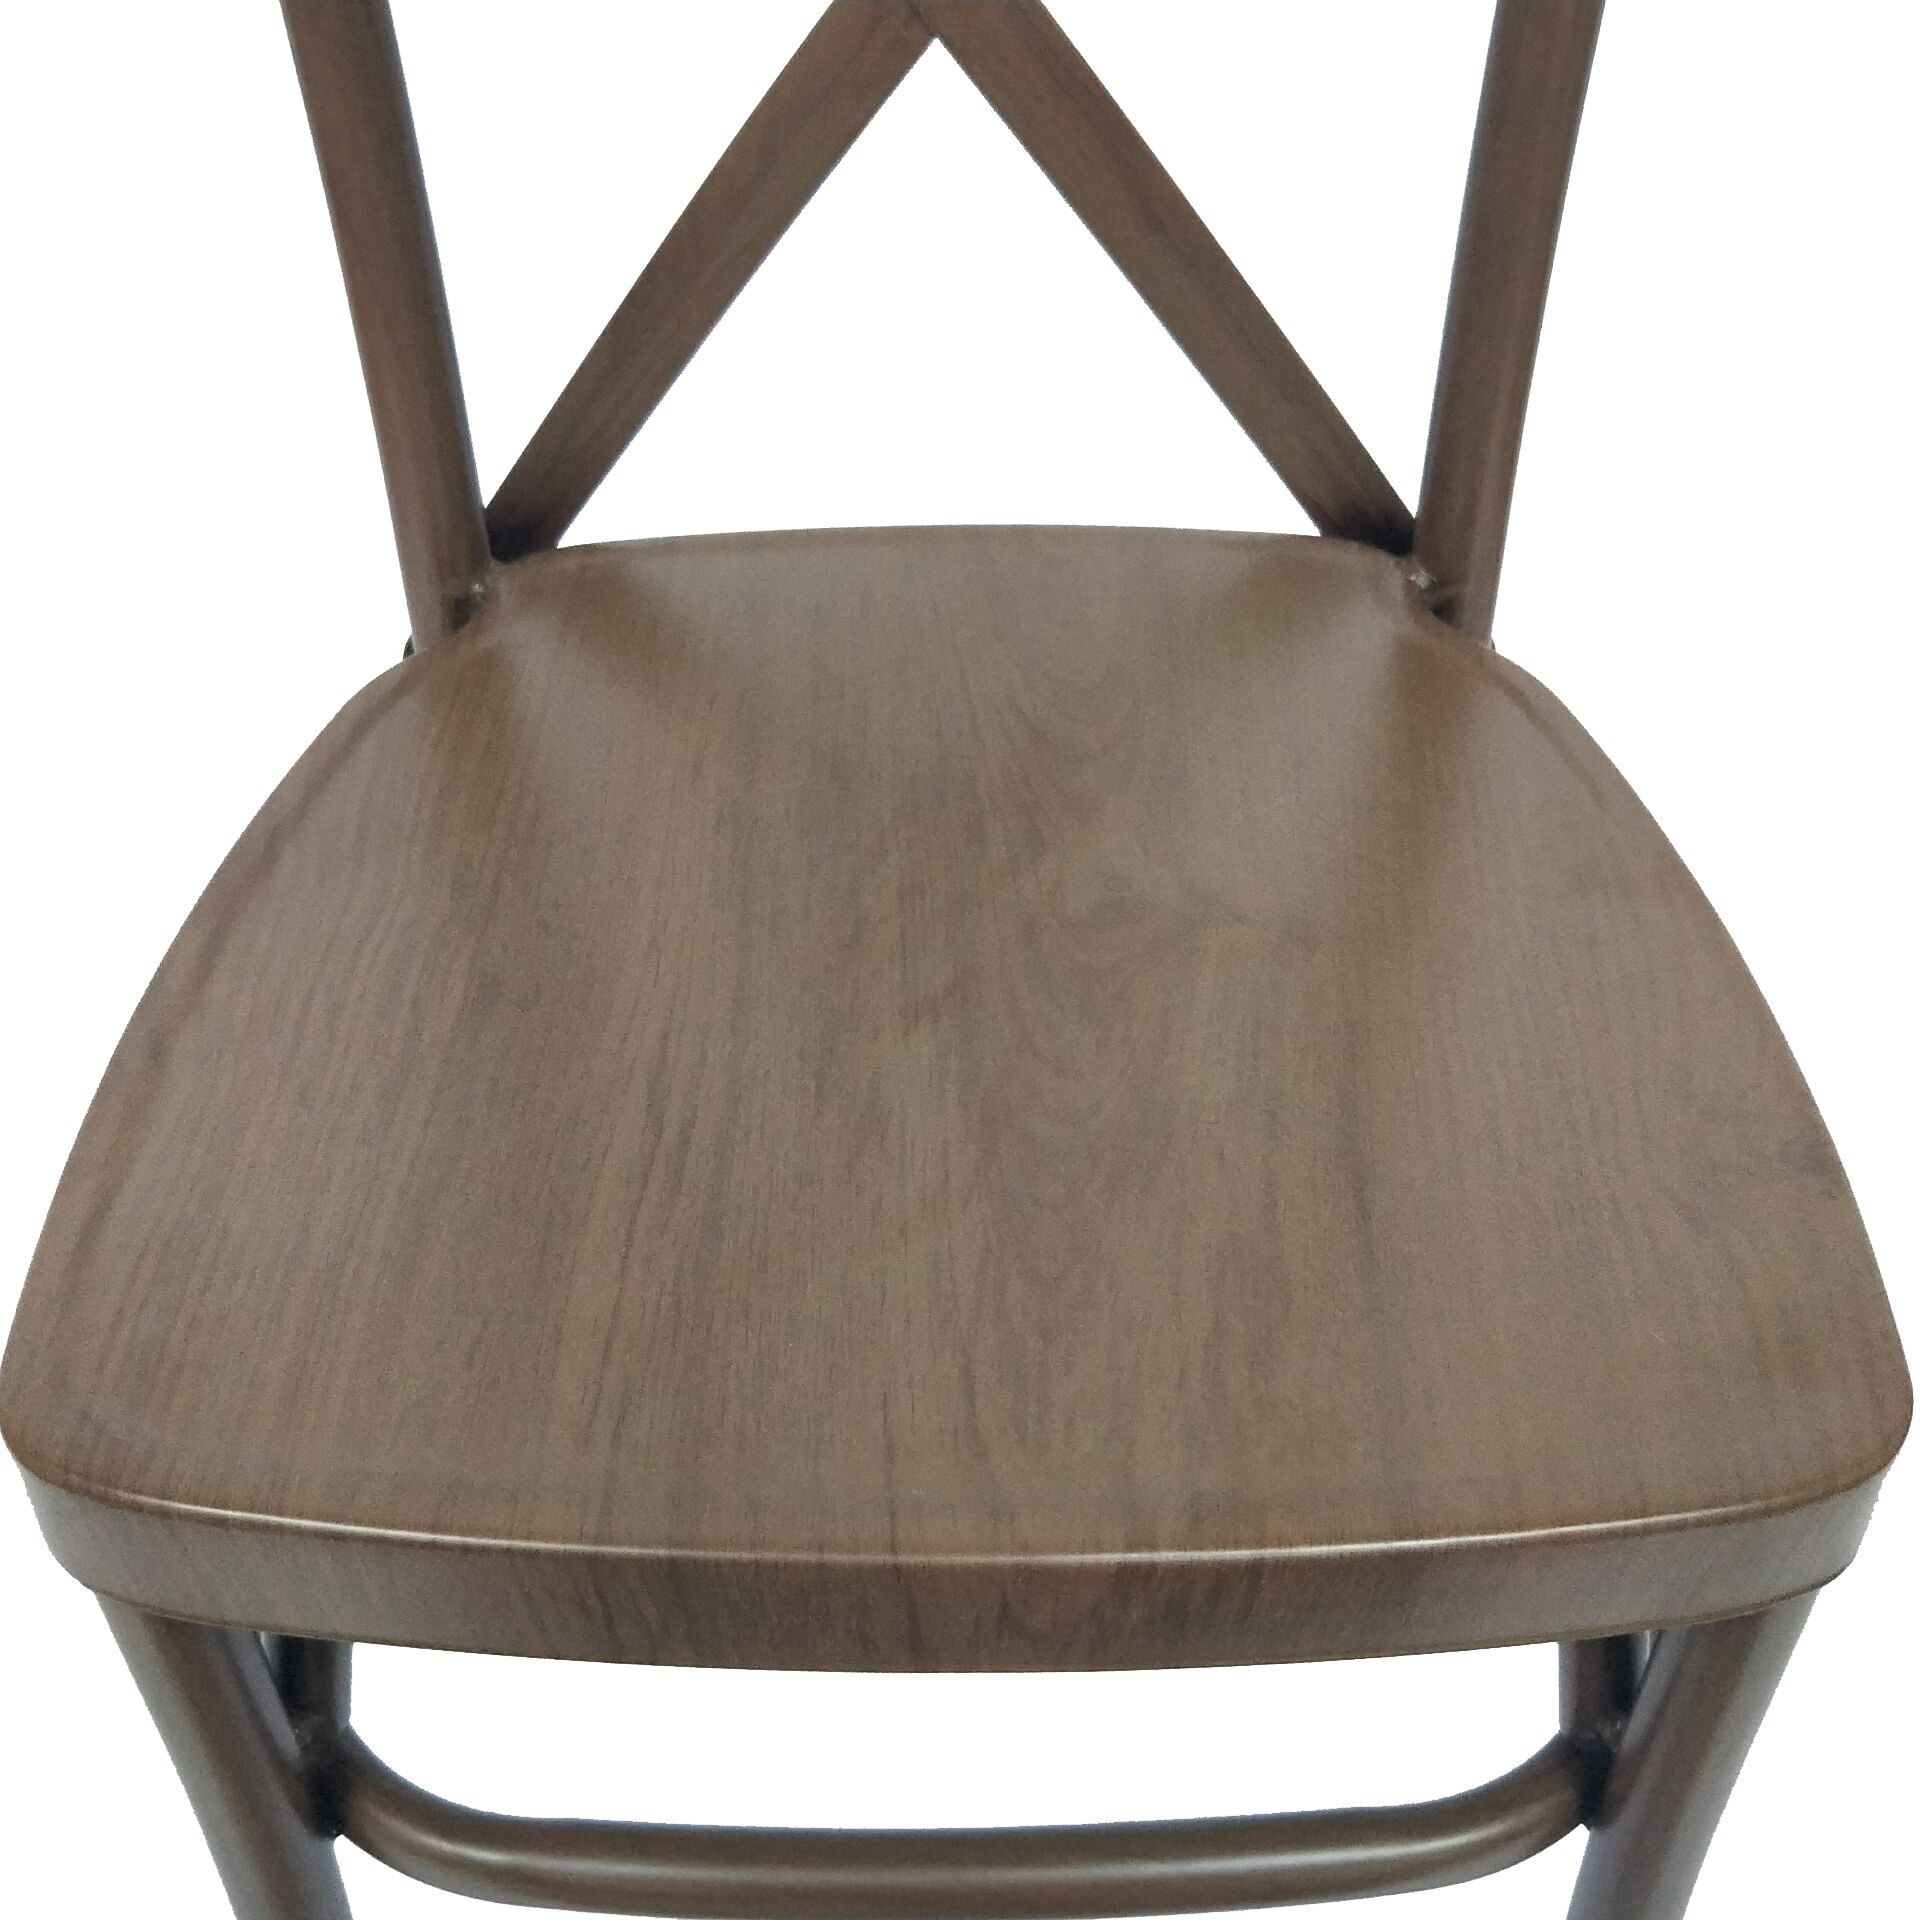 Hot-selling Church Chairs Canada -